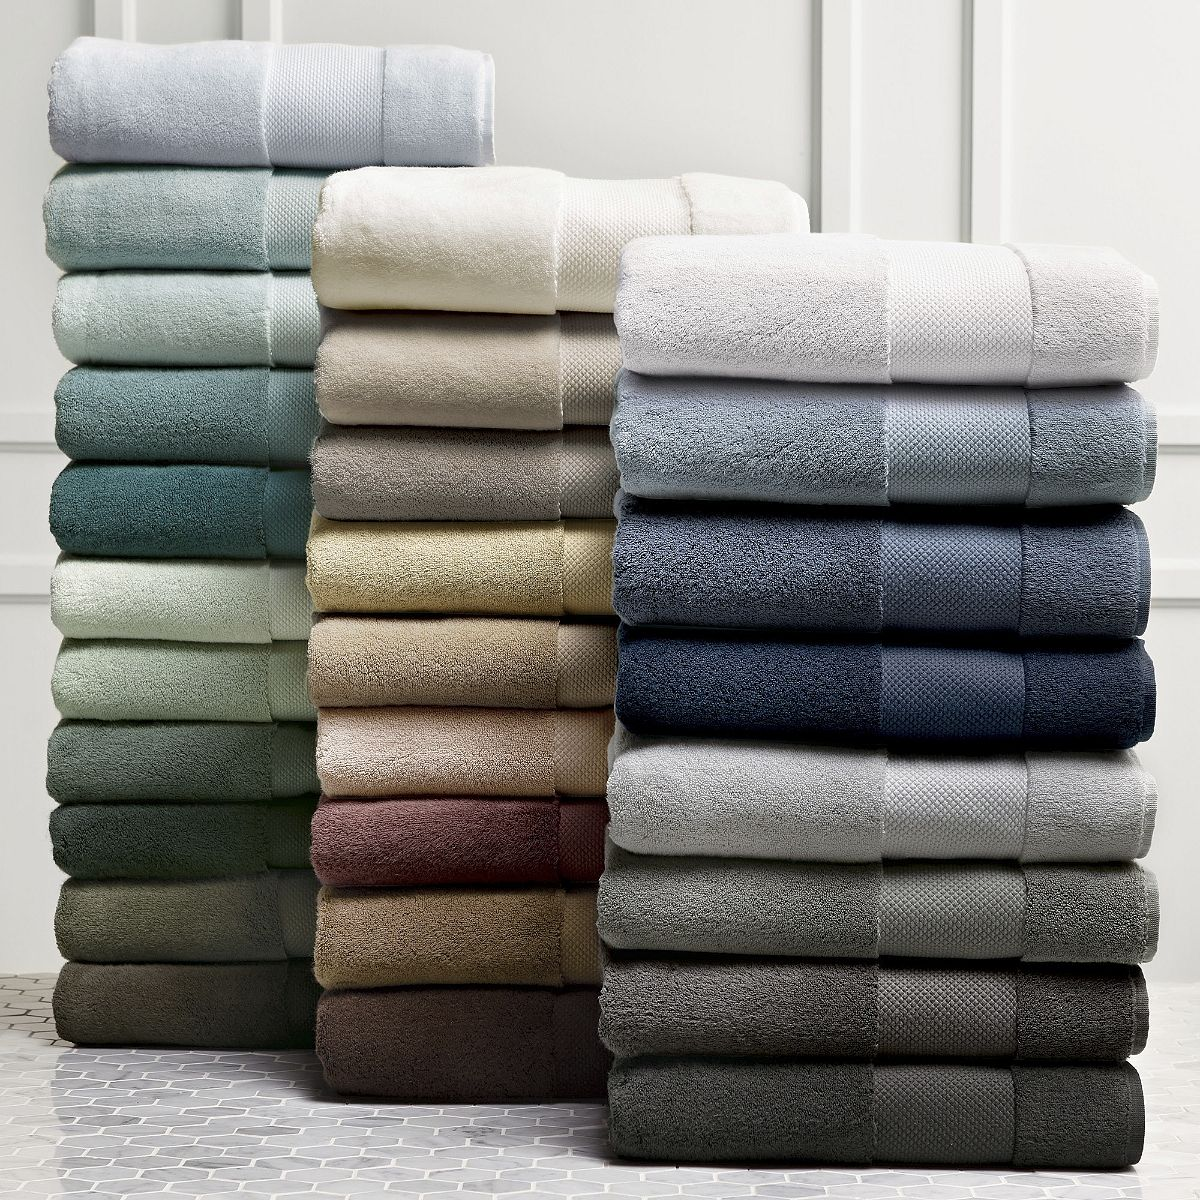 Soft Home Hotel Bath Towel Wholesale Bath Towels Most Expensive Towel Fluffy Towels Personalised Towel Baby